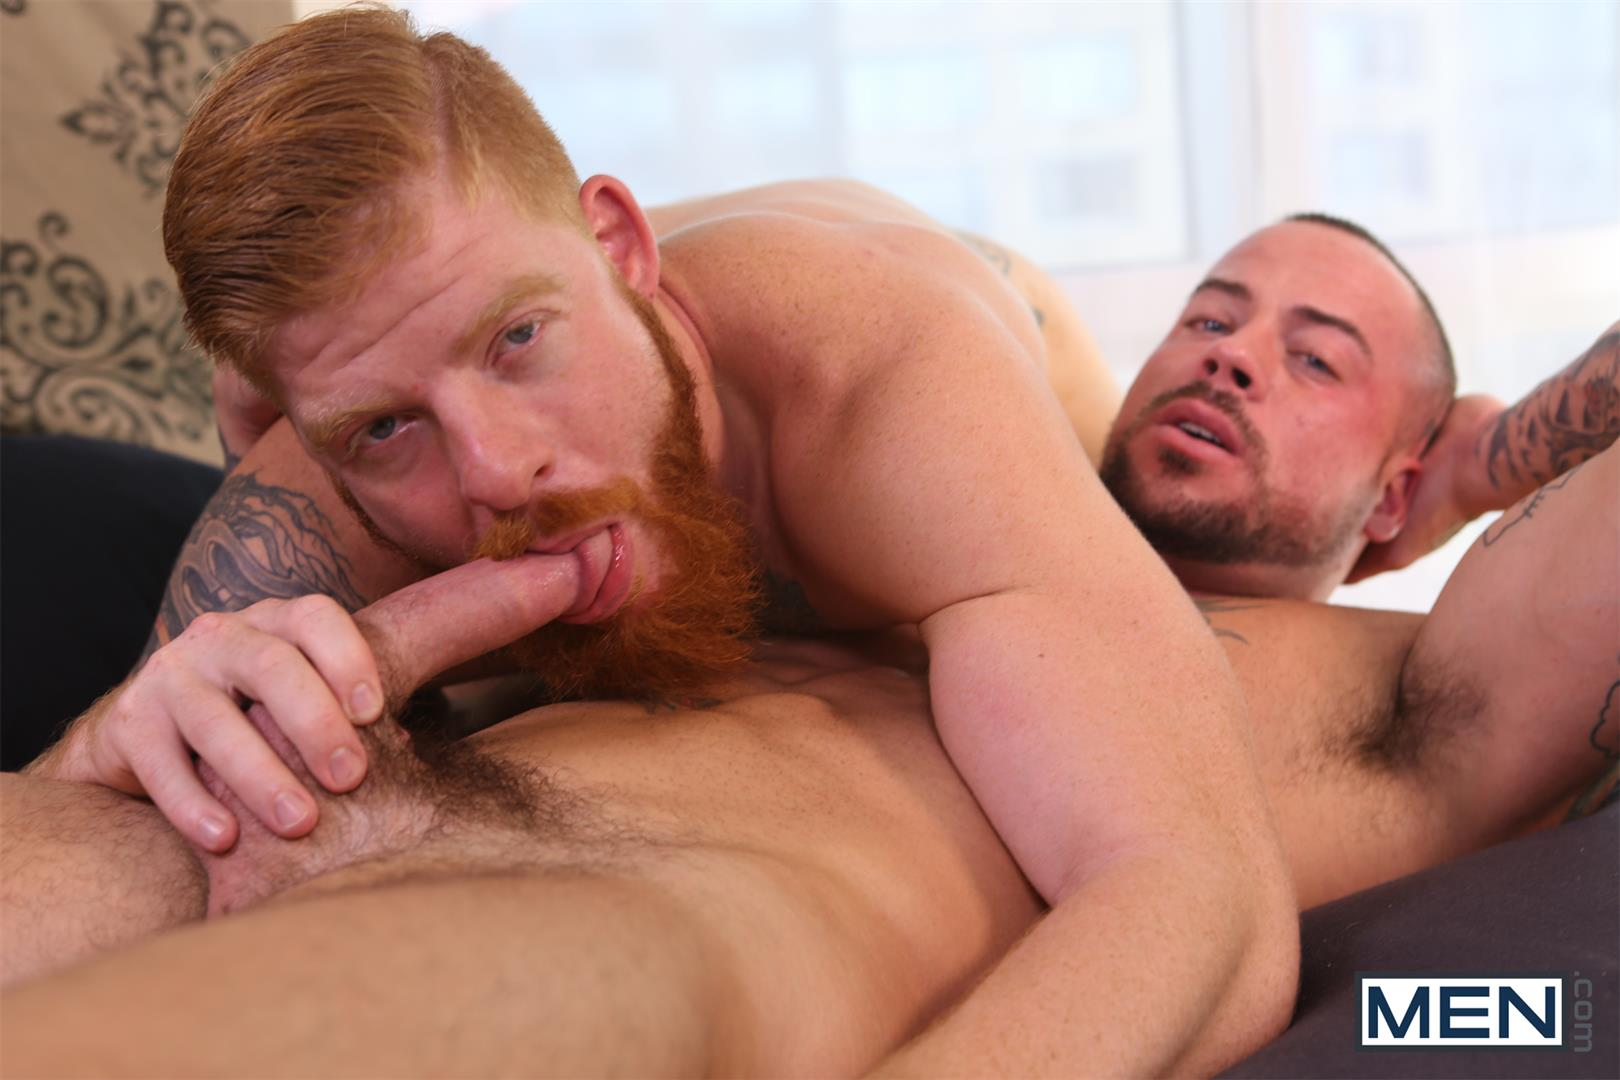 Men Bennett Anthony and Sean Duran Naked Redhead Muscle Guys Fucking Amateur Gay Porn 10 Bennett Anthony Fucking A Muscle Hunk With His Big Ginger Cock